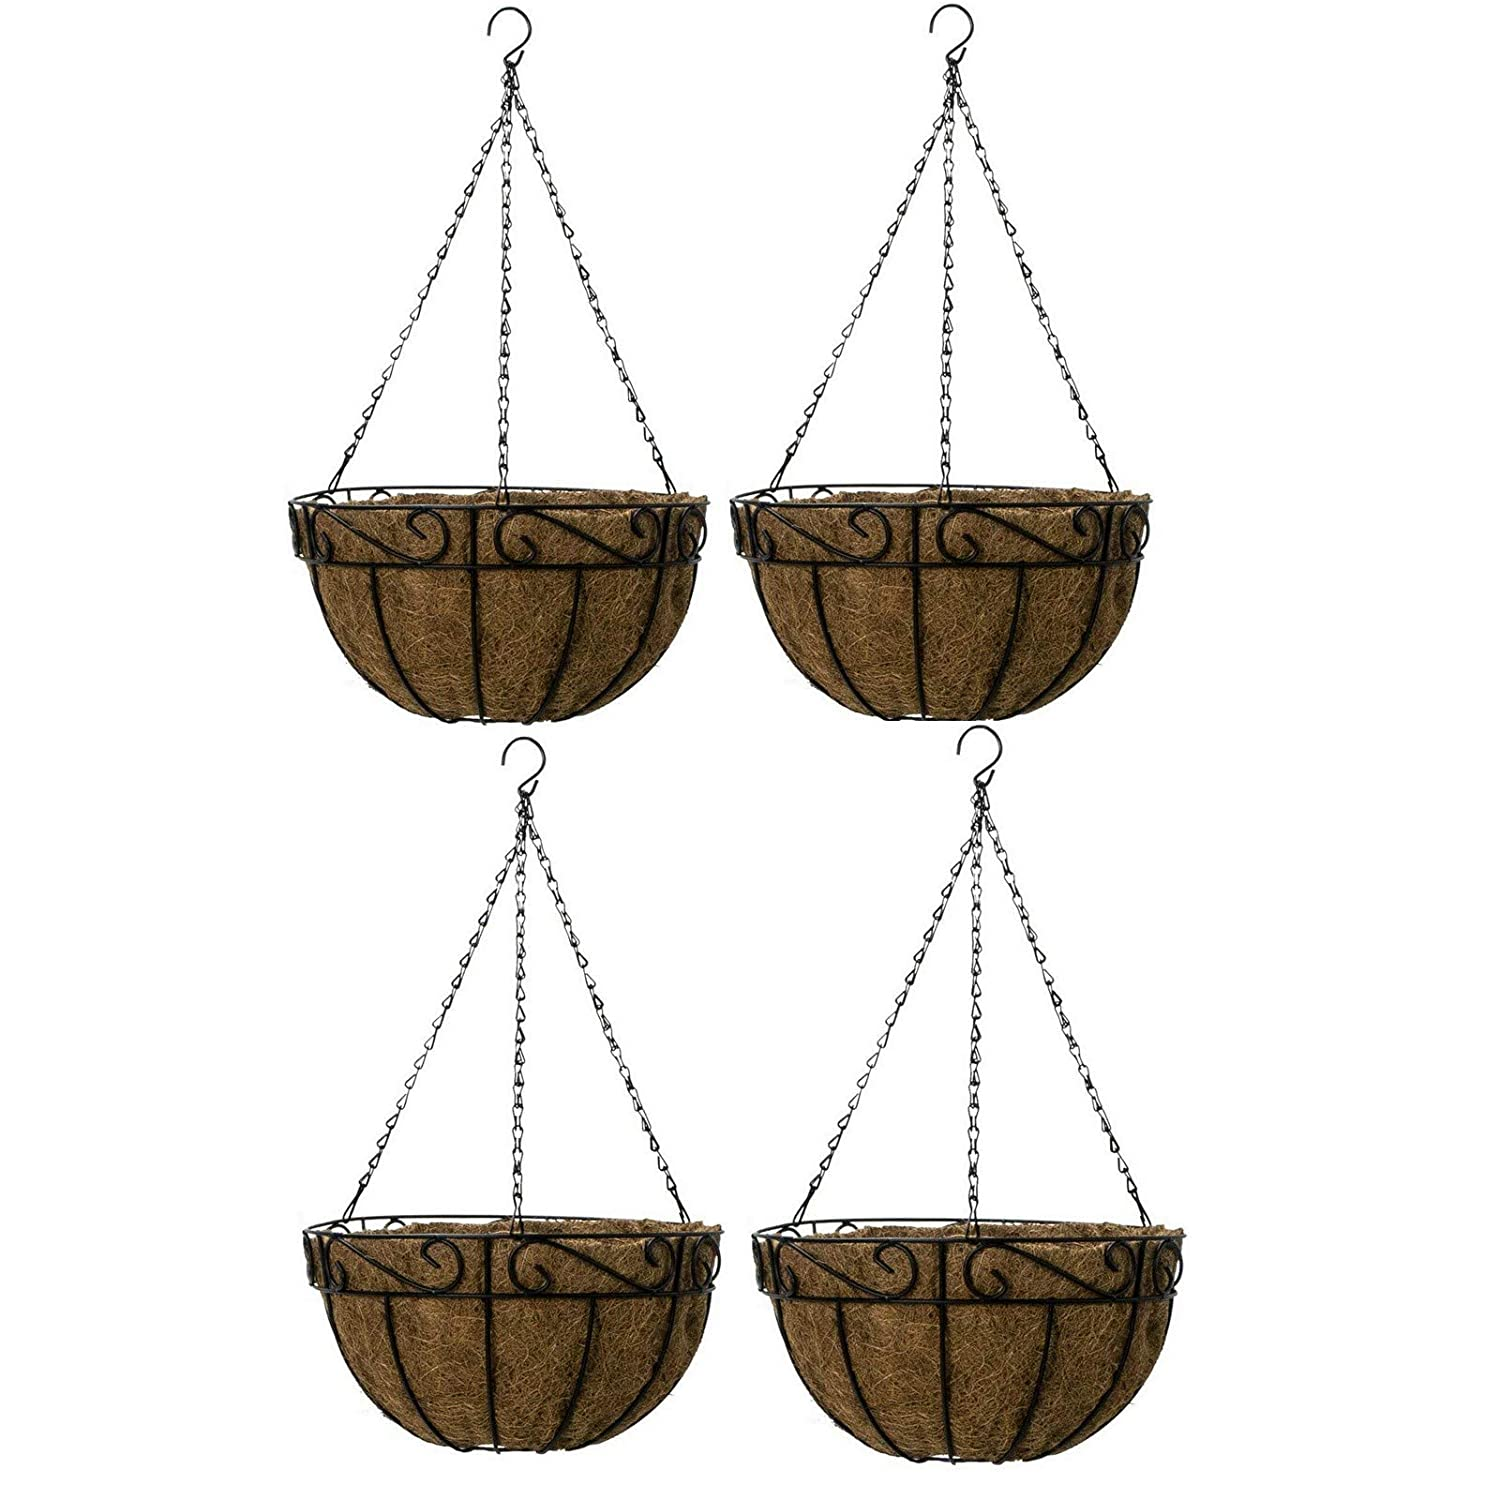 Ashman 4 Pack Metal Hanging Planter Basket with Coco Coir Liner Round Wire Plant Holder Chain Porch Decor Flower Pots Hanger Garden Decoration Indoor Outdoor Watering Hanging Baskets